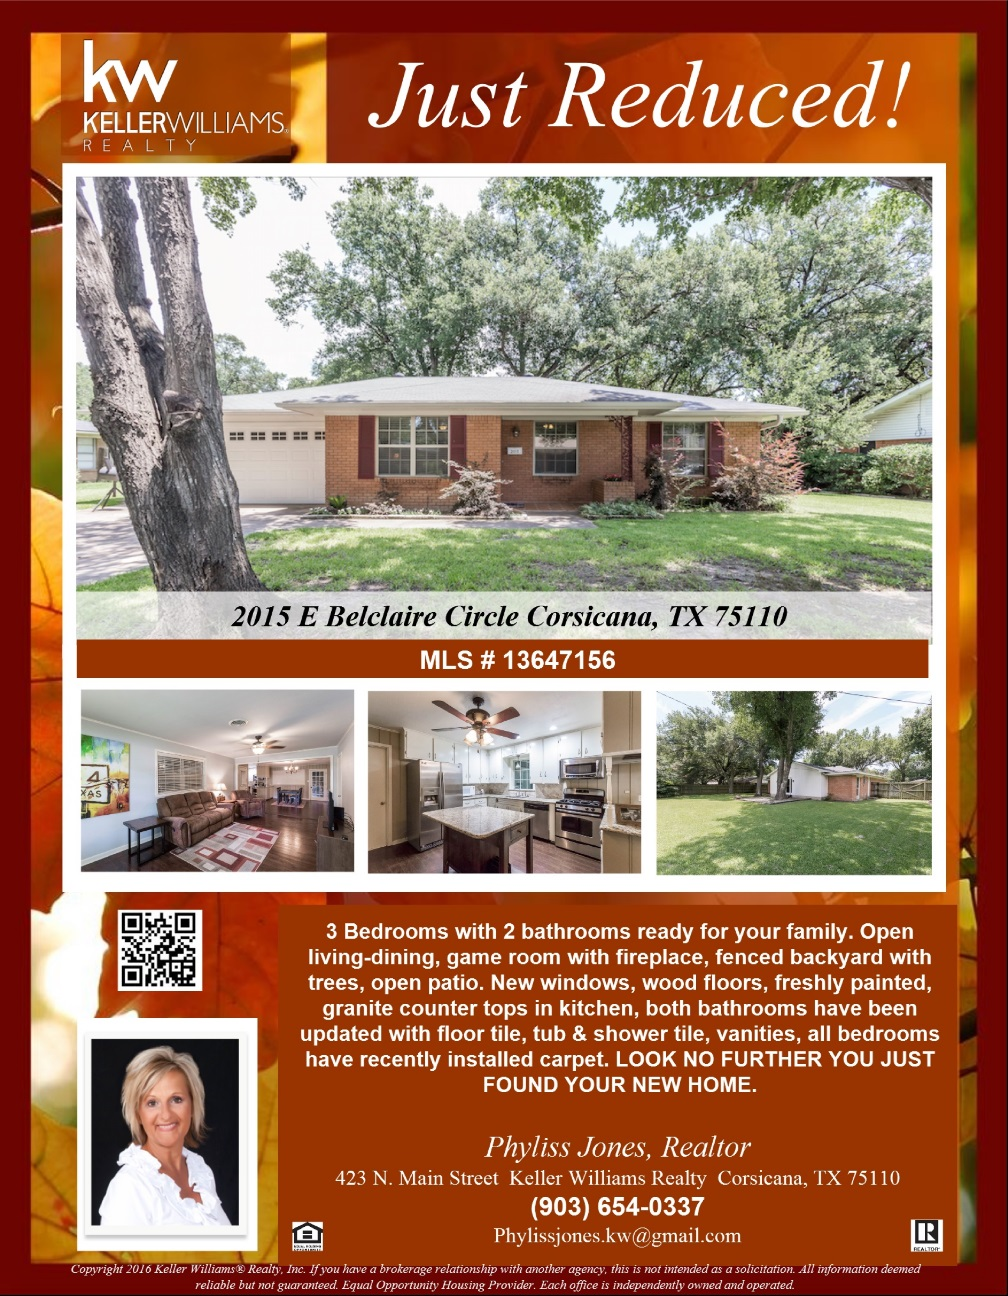 JUST REDUCED! Own this Beautiful home now! Please call me for more info. Phyliss Jones (903) 654-0337  #Reducedpricehome #Justreduced #Greatdeal #Corsicanahomeforsale #KW #Kellerwilliamsarlington #Bestdeal #Realestate